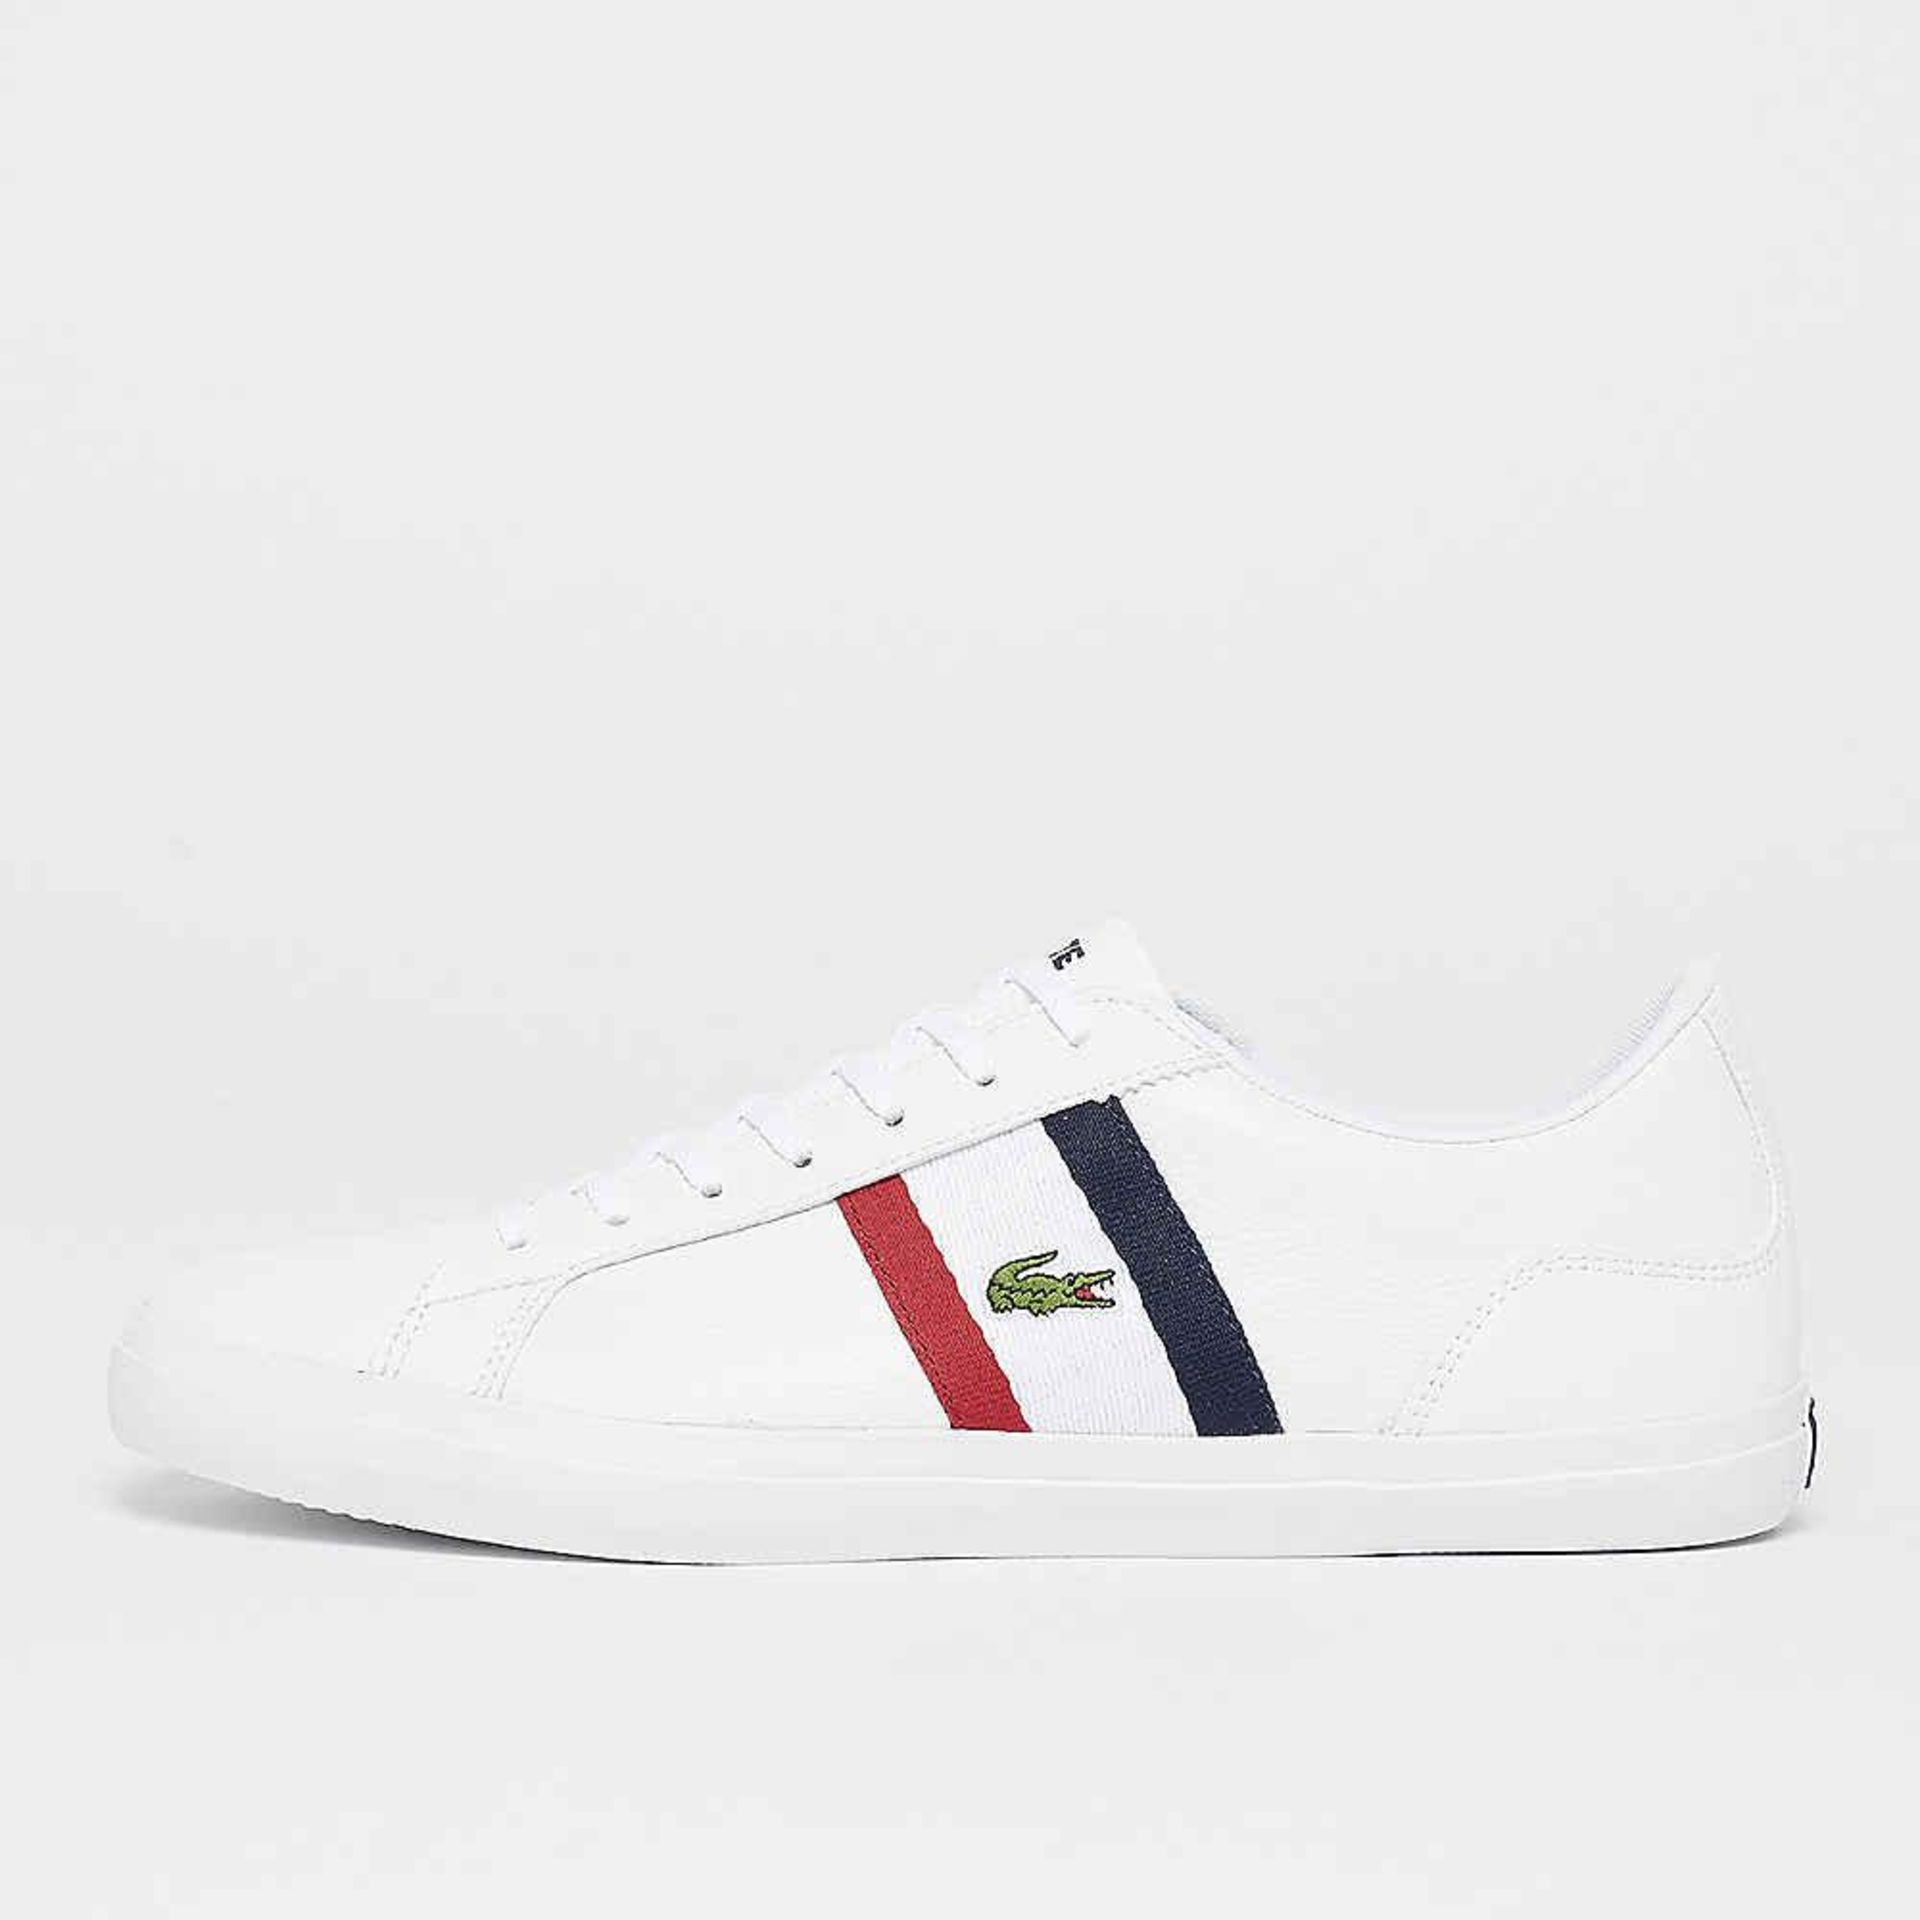 + VAT Brand New Lacoste Trainers UK Size 9.5 - White Red Navy - Leather and Synthetic - EU Size